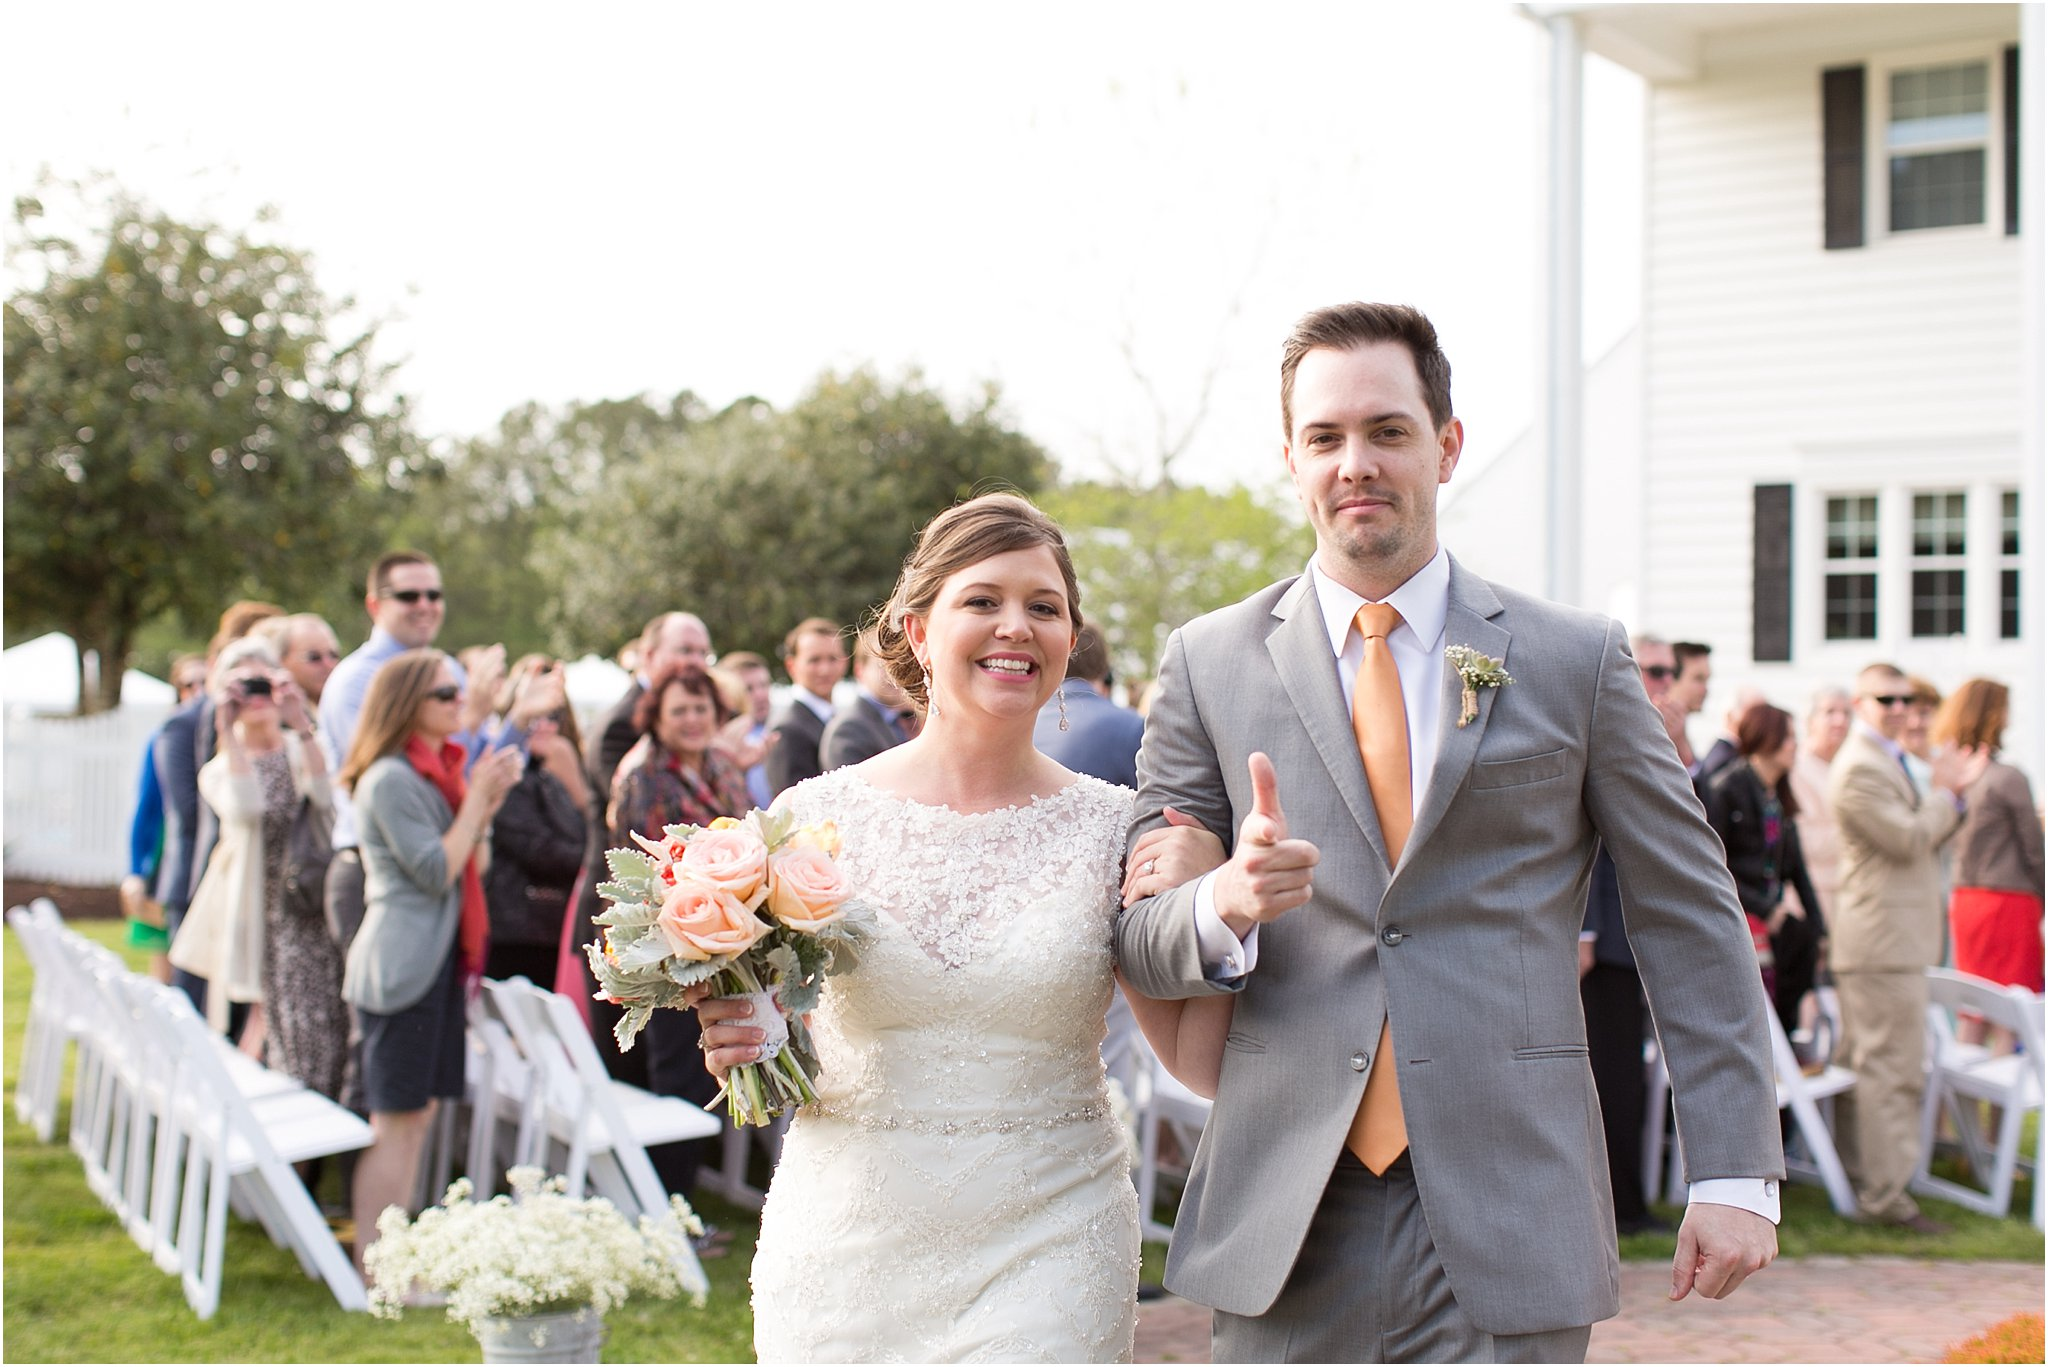 jessica_ryan_photography_holly_ridge_manor_wedding_roost_flowers_jamie_leigh_events_dhalia_edwards_candid_vibrant_wedding_colors_1303